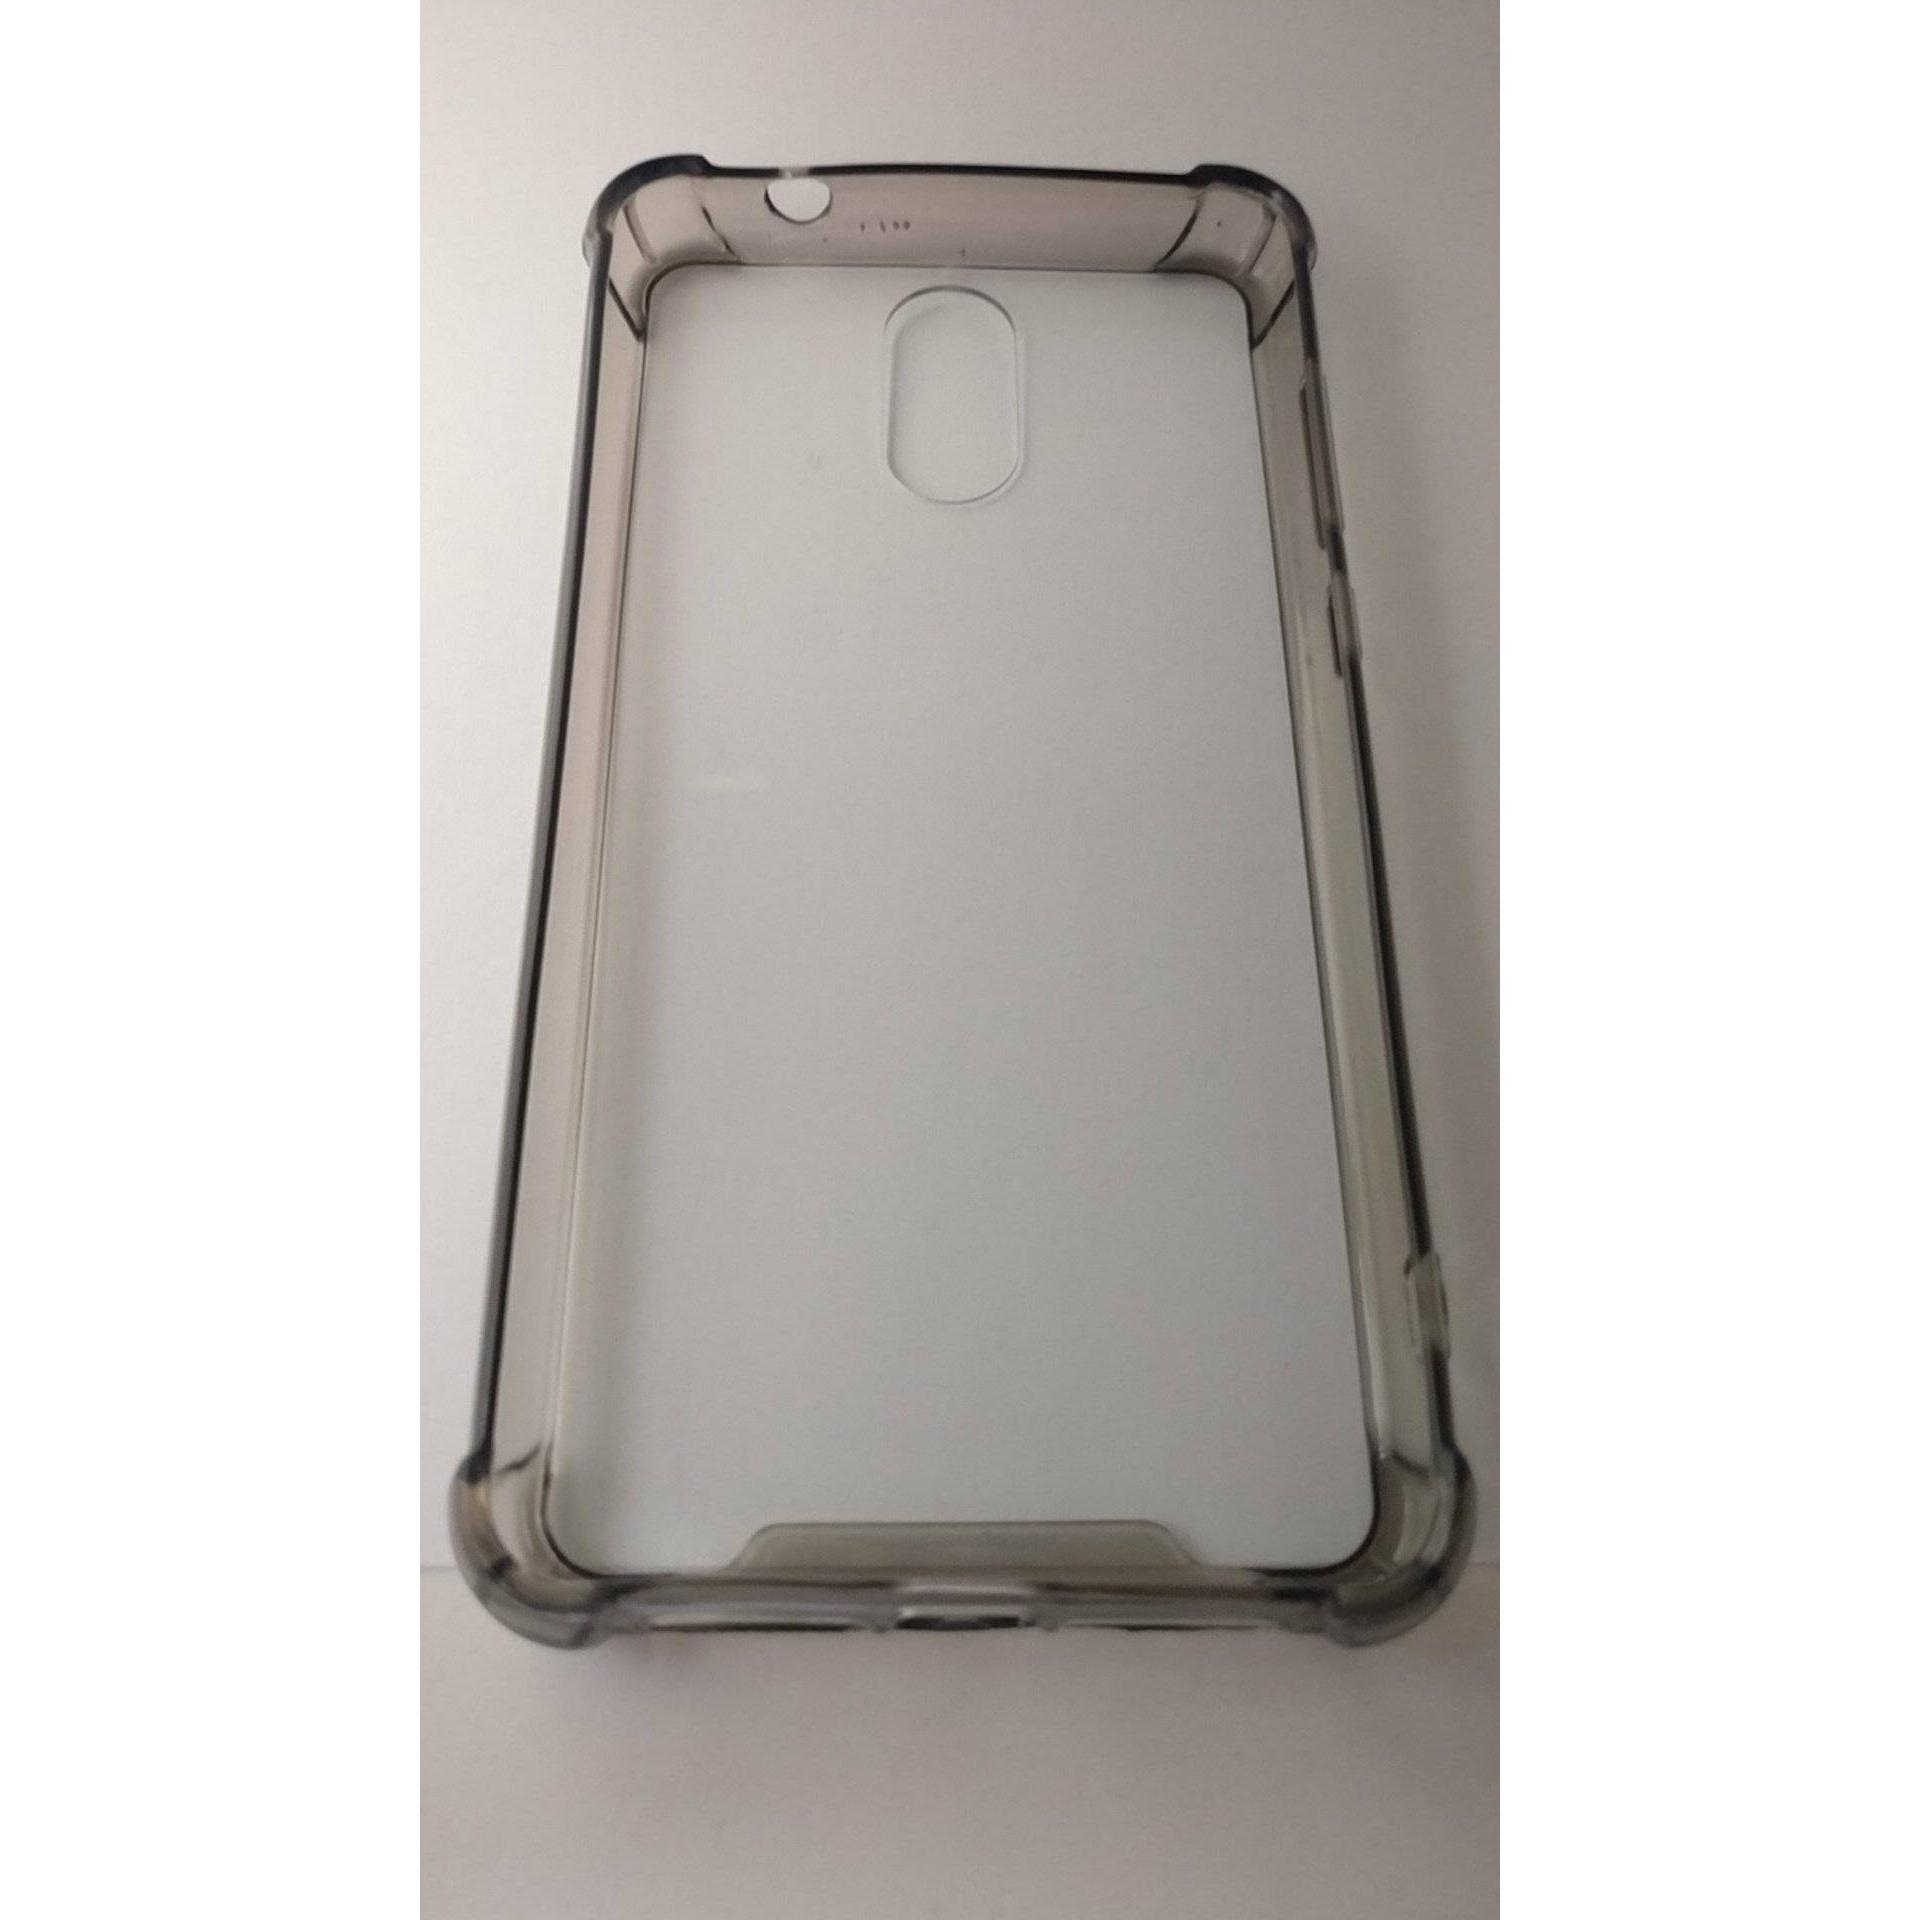 Tpu Clear Transparent Case Cover For Source · shock proof case for MyPhone .